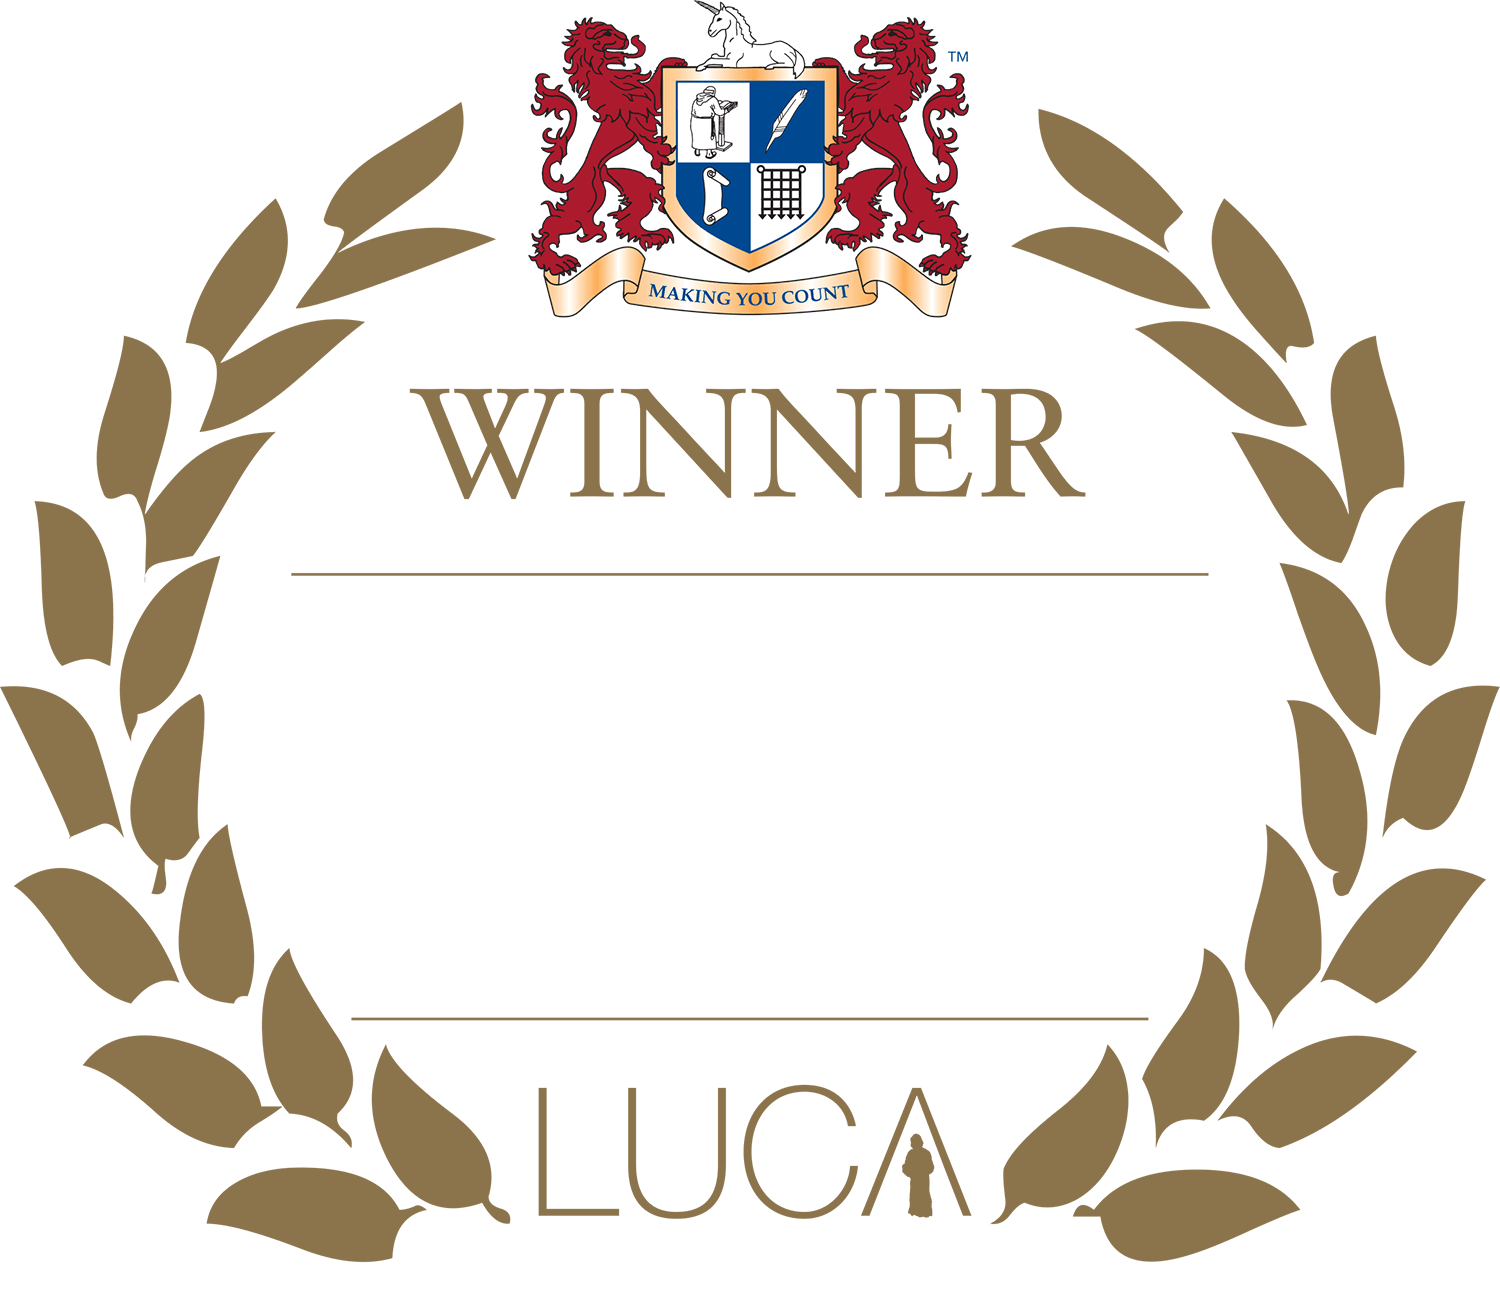 LUCA Winner CRM & Practice Management Software 2018